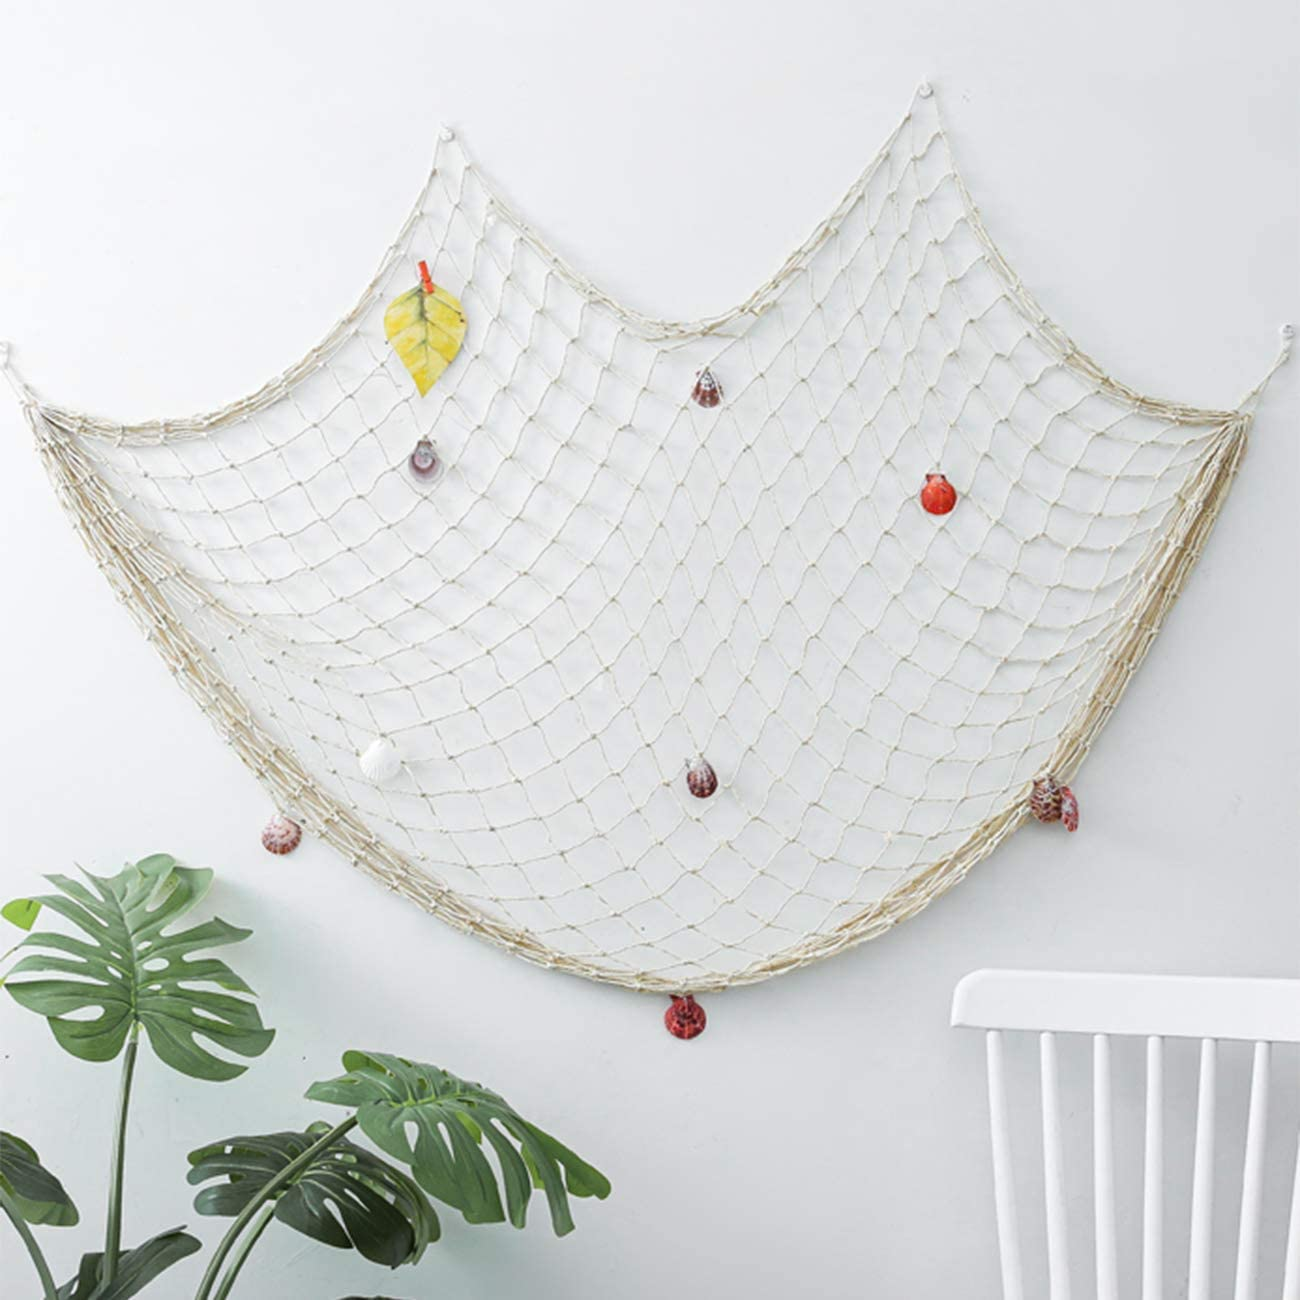 band Decorative Fishing Net Wall Decor with Seashells Nautical Style Wall Hangings Ornaments Mediterranean Style Photographing Accessory Ocean Themed Wall Hangings (White)